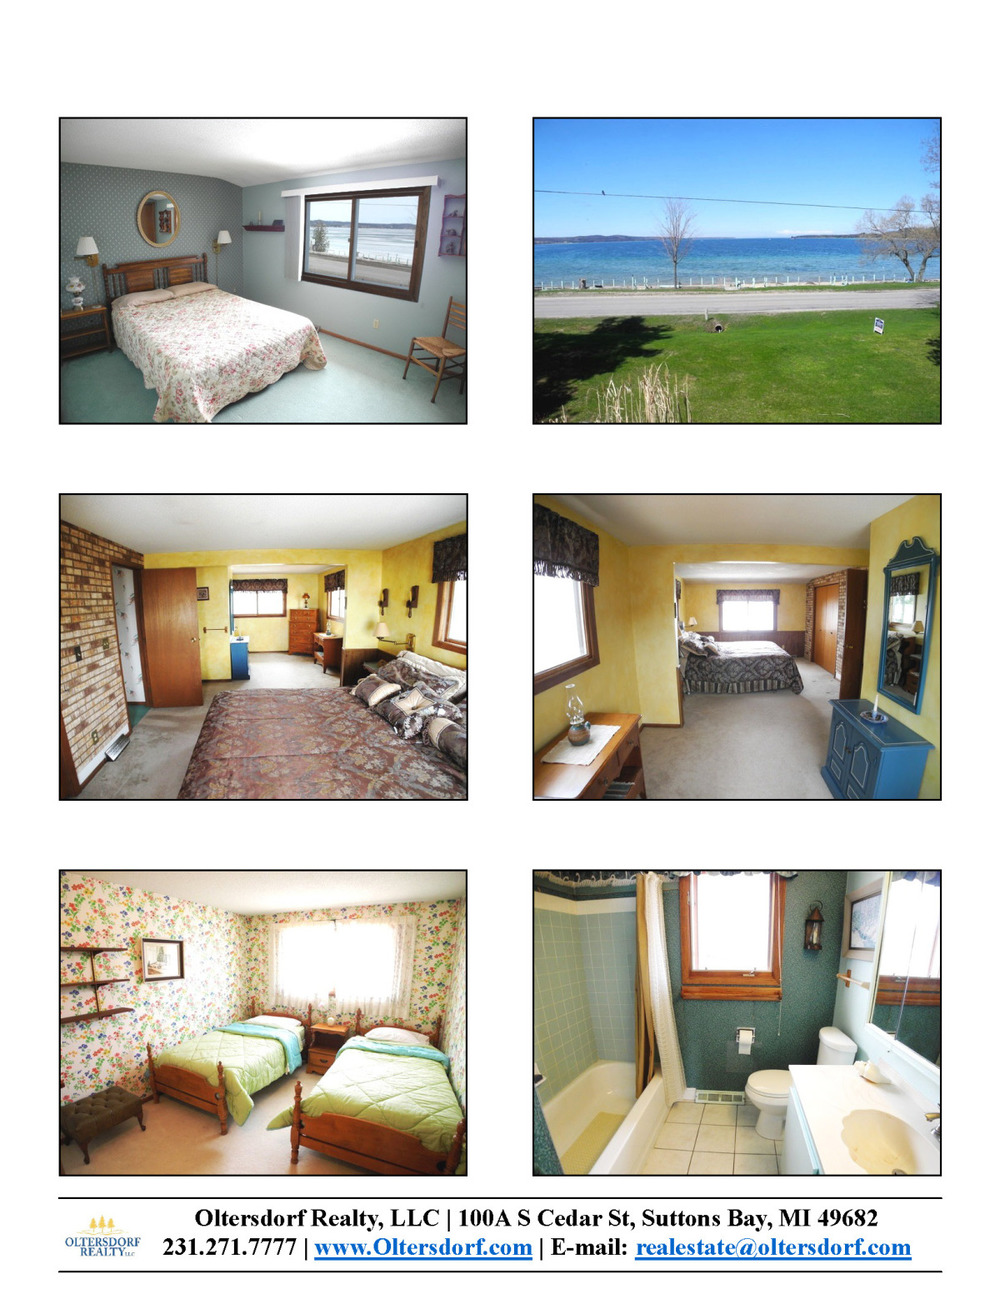 488 s shore dr suttons bay waterfront home for sale in leelanau by oltersdorf realty llc photo gallery (1).jpg